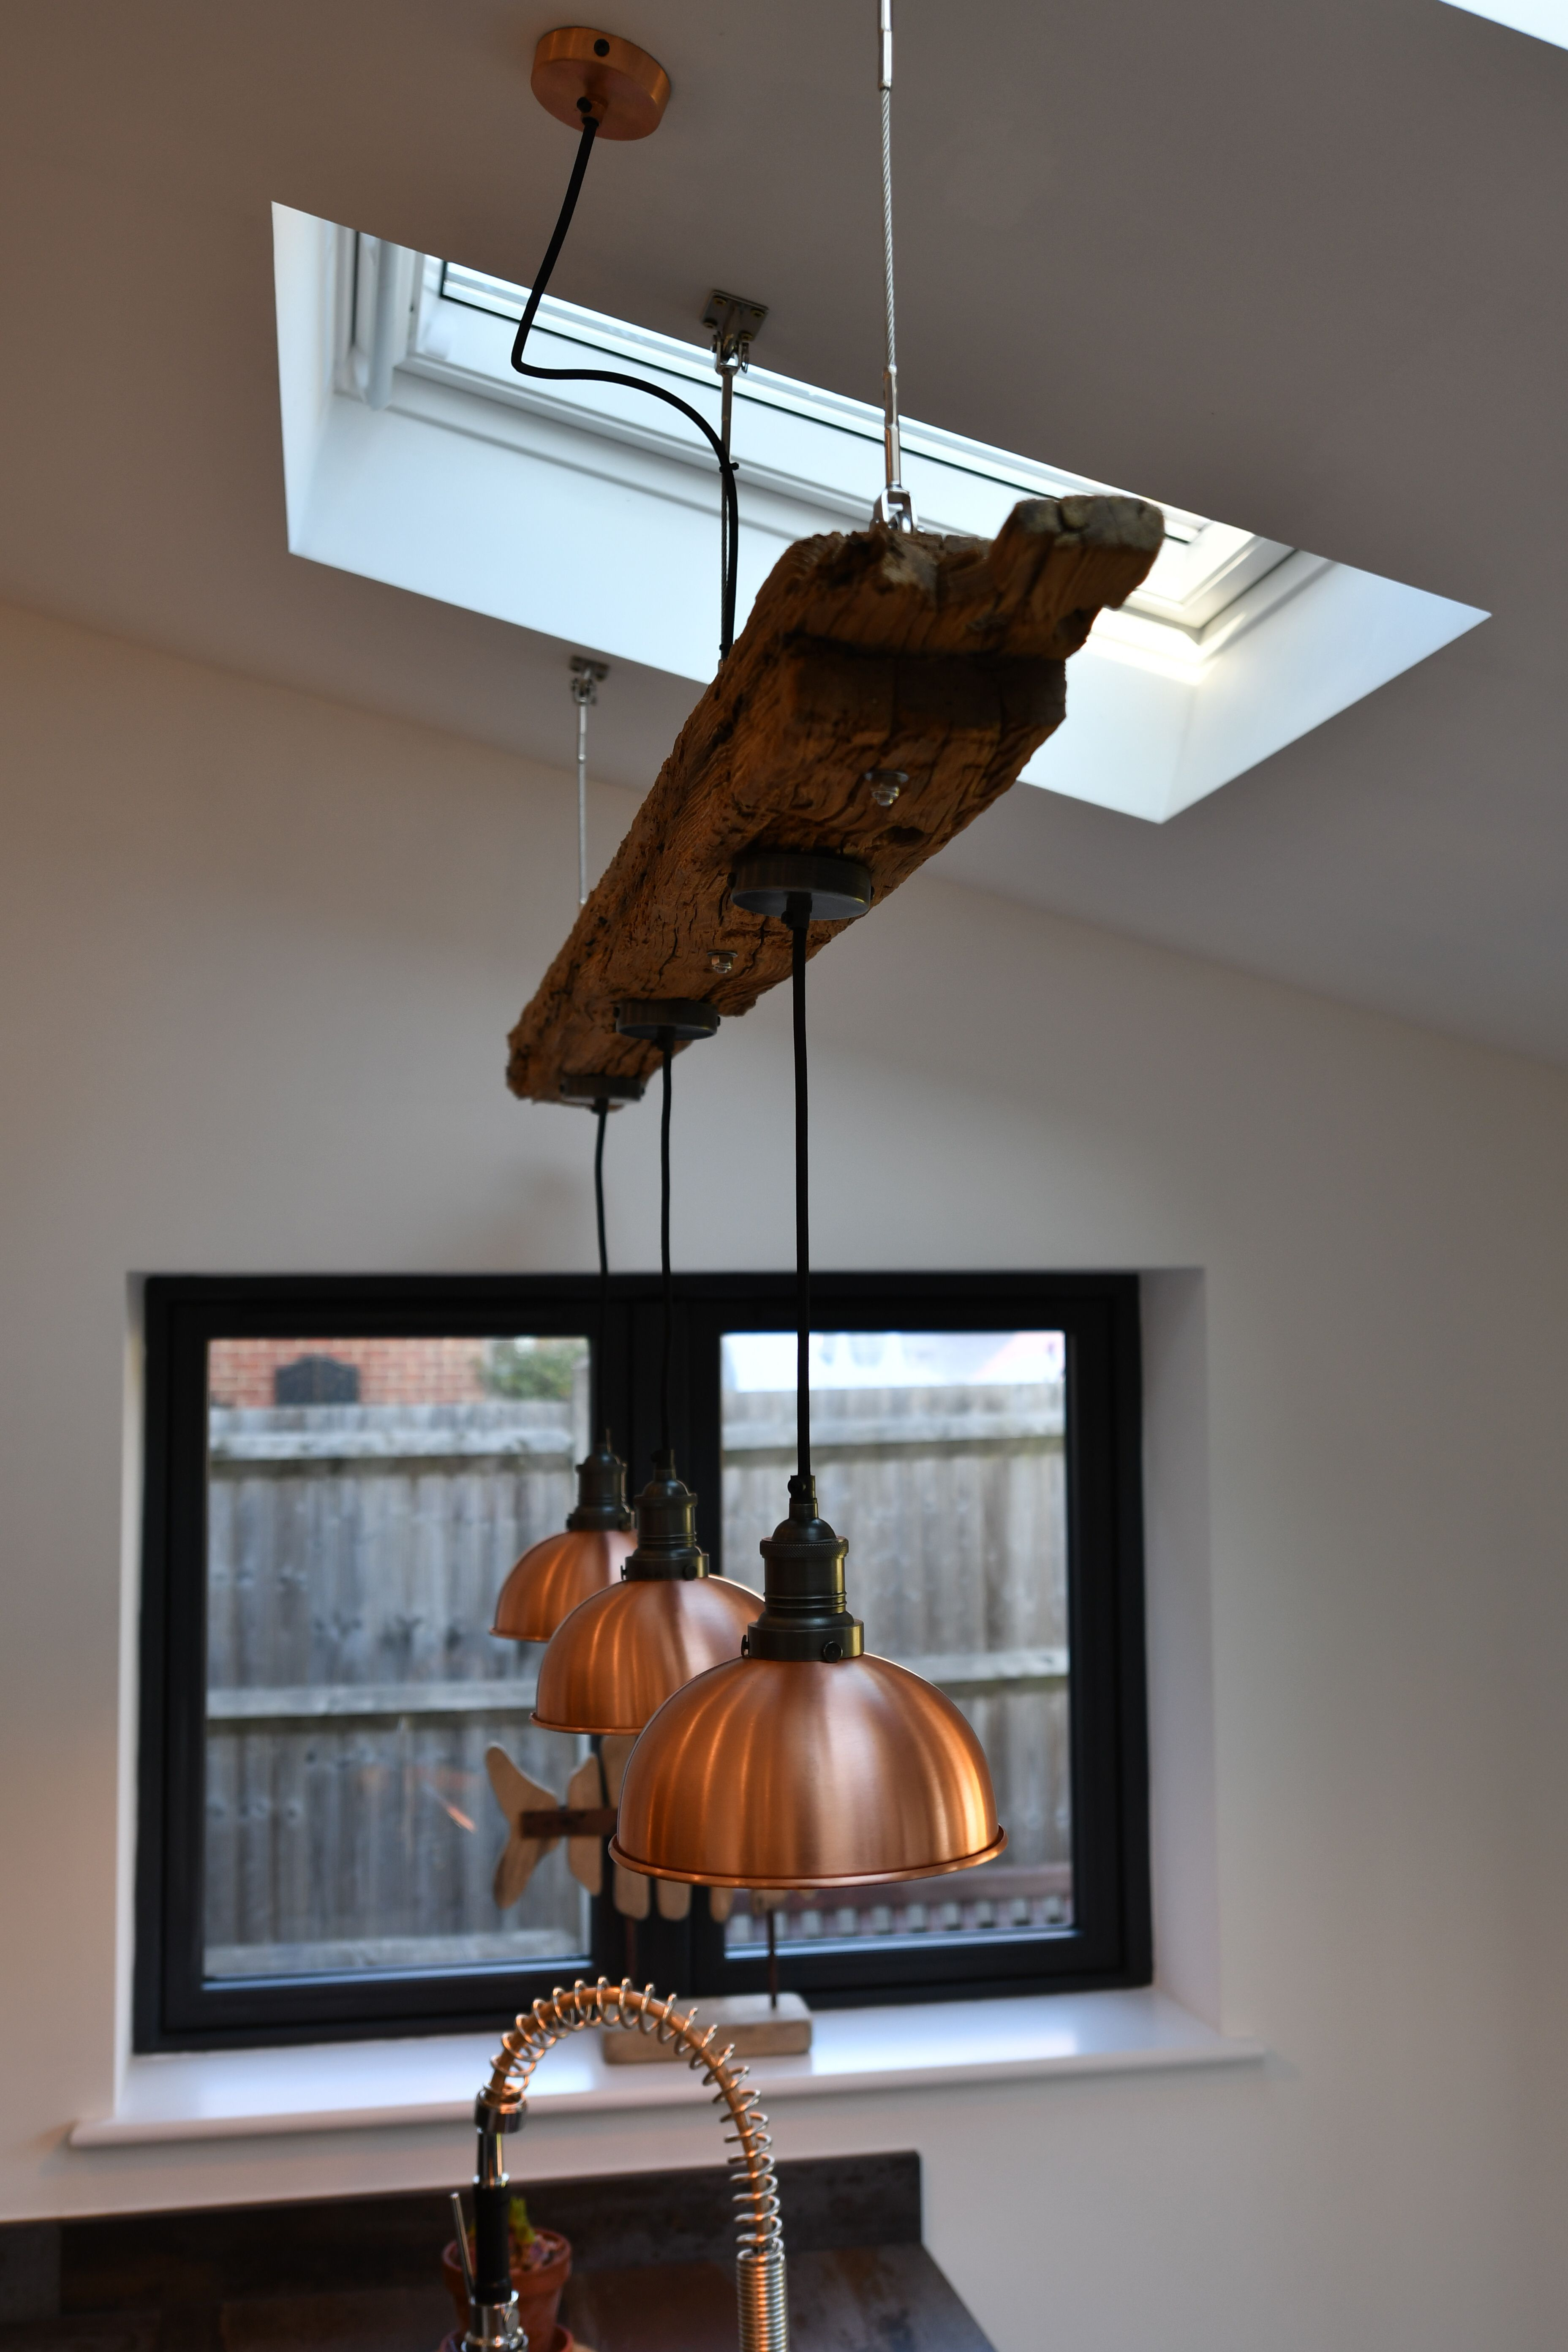 New year interior design ideas by industville ltd copper lights add a warm glow to any given space 📸 image credit nigel